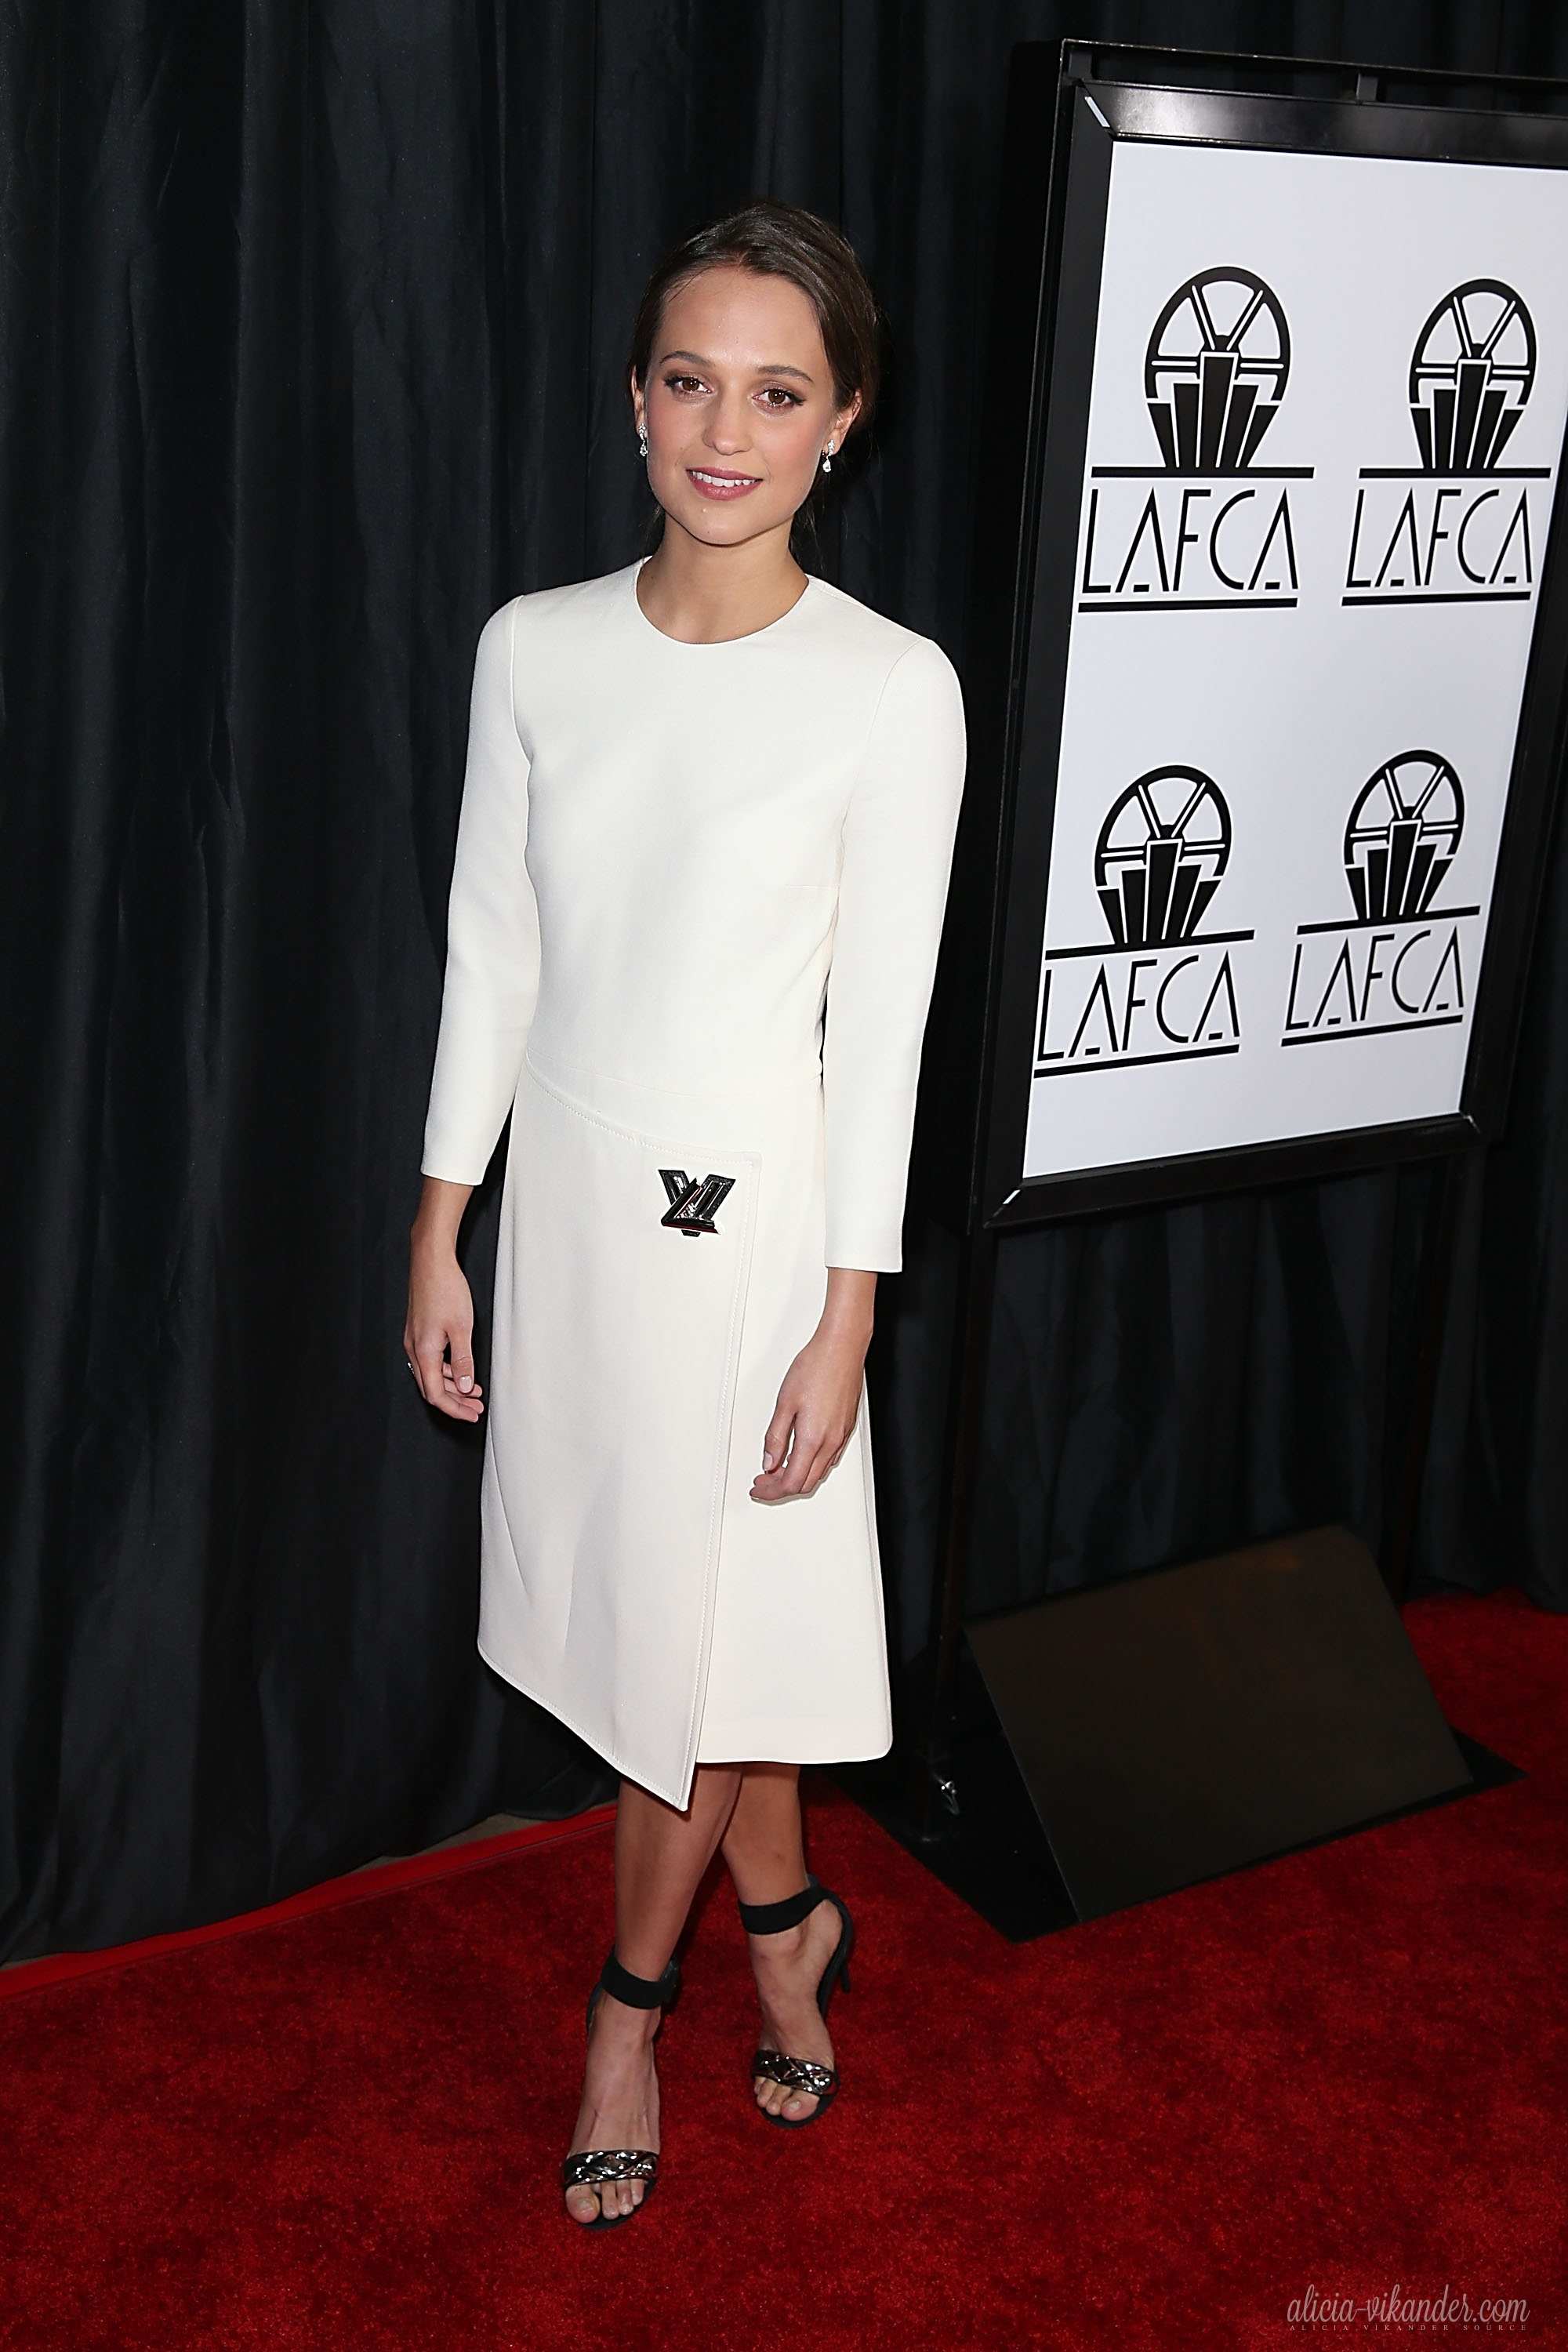 alicia-vikander-at-40th-annual-los-angeles-film-critics-association-awards-in-century-city-01-09-2016_3